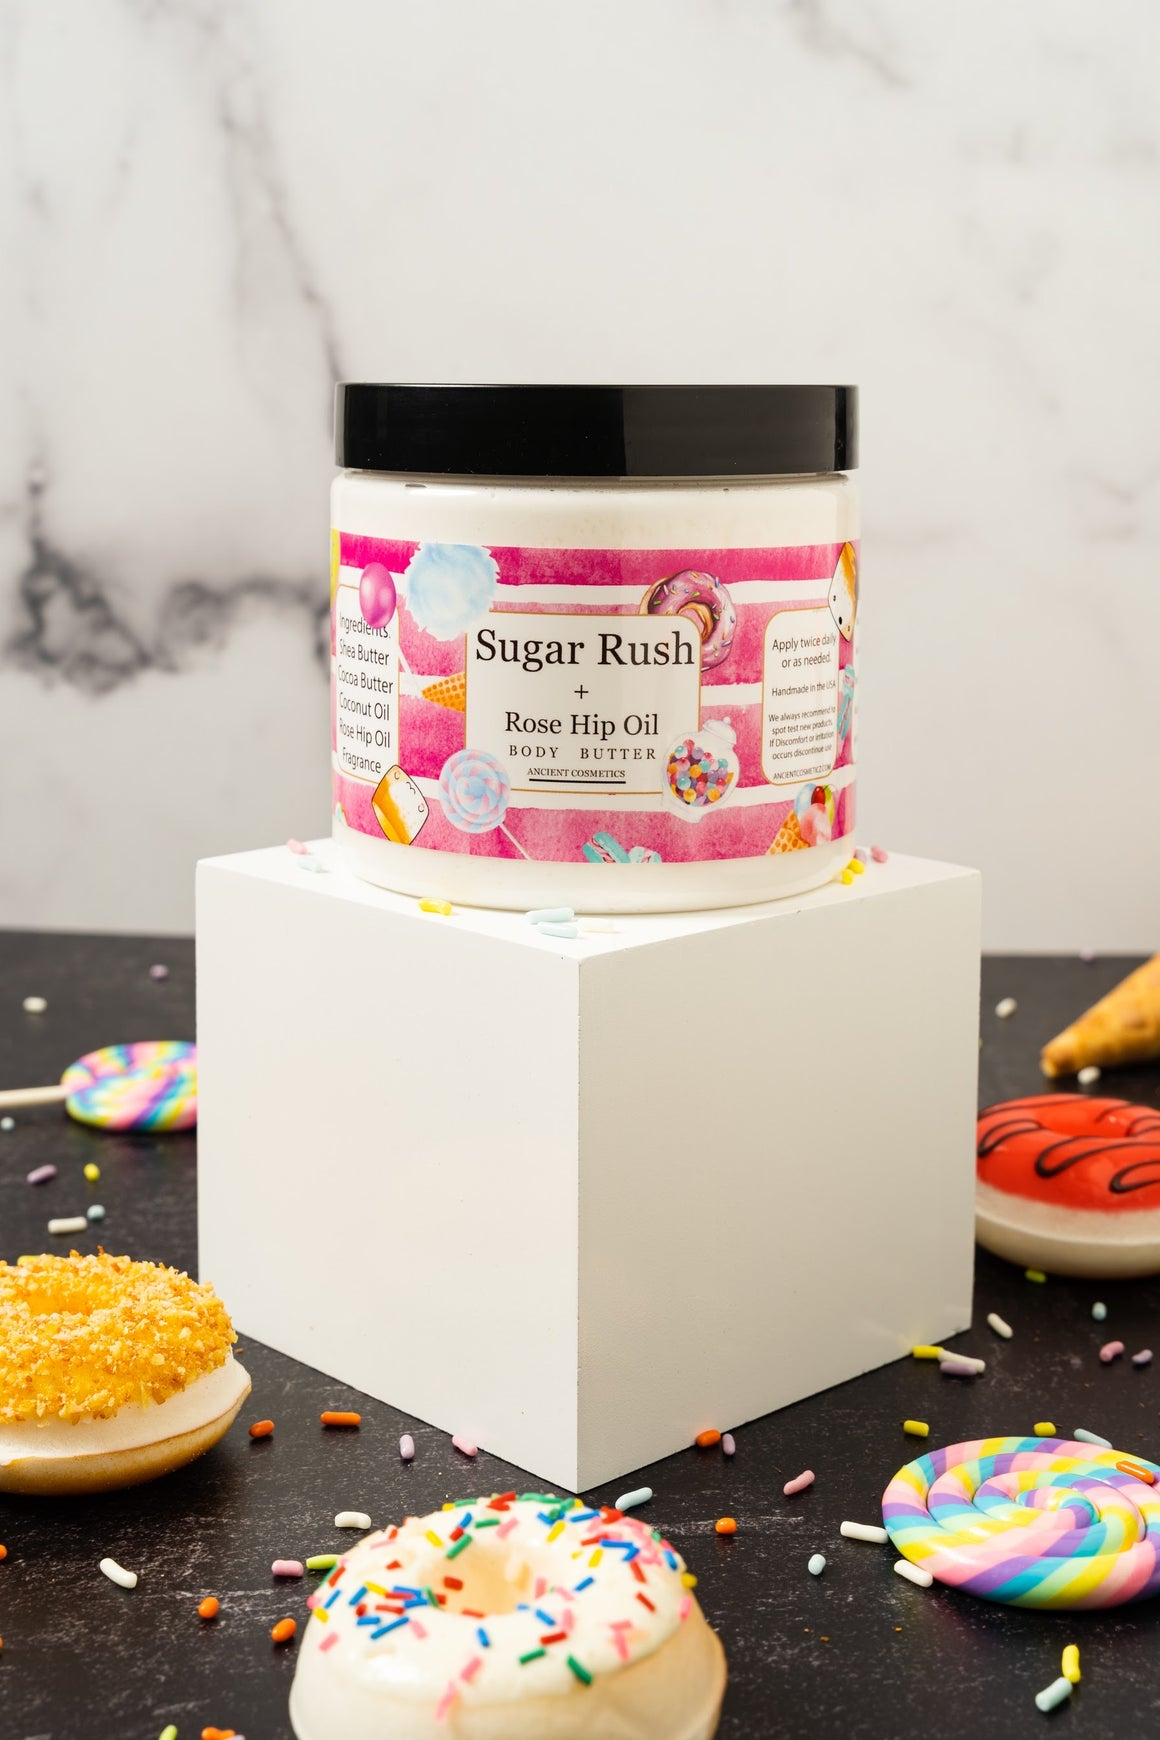 Sugar rush & Rose hip Oil -Body Butter